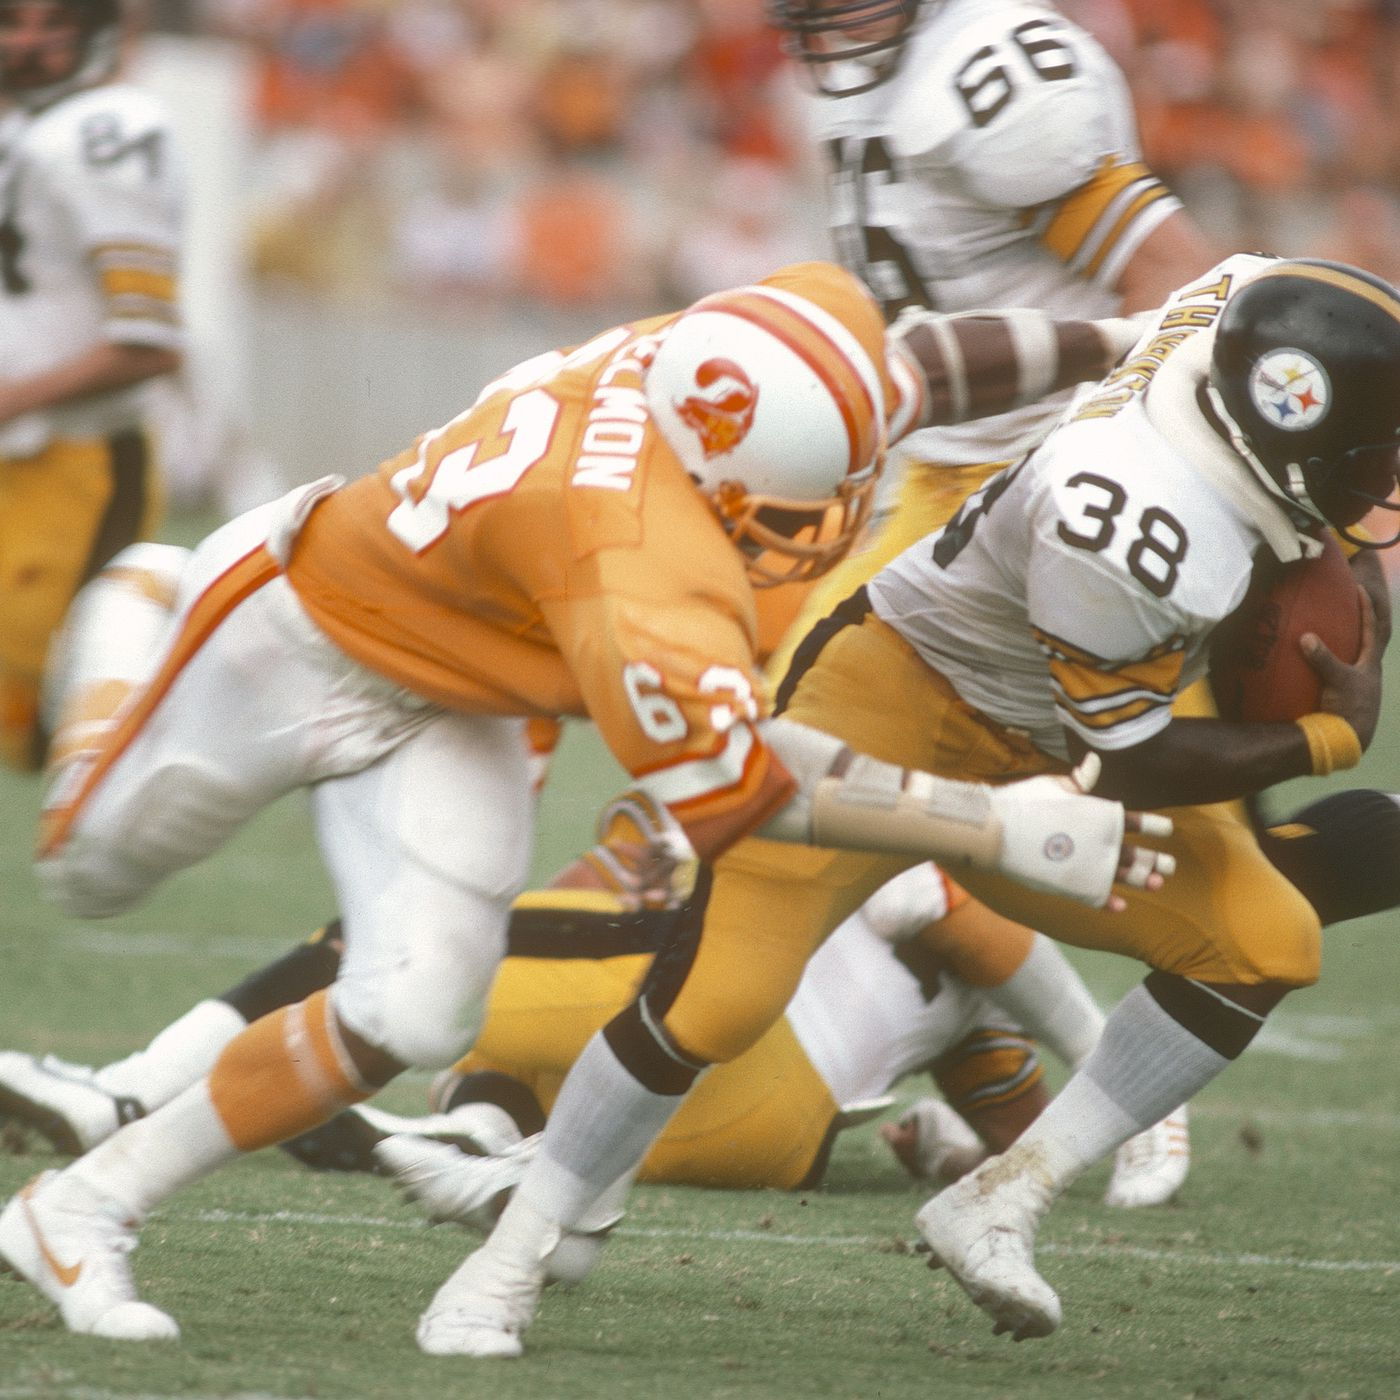 The Buccaneers Old Creamsicle Uniforms Are Beautiful Shut Up Haters Sbnation Com